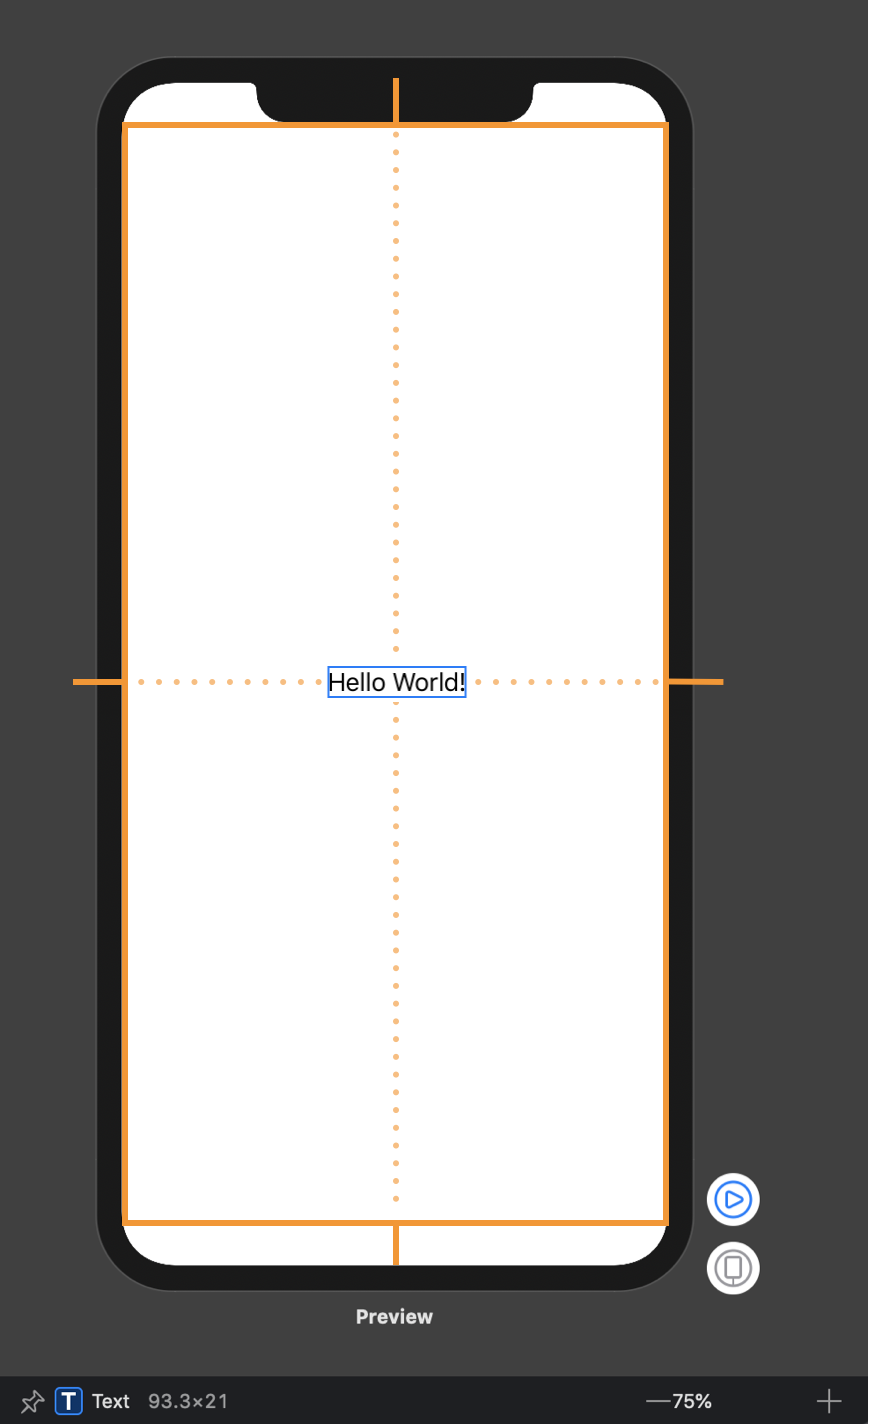 Xcode Canvas screenshot